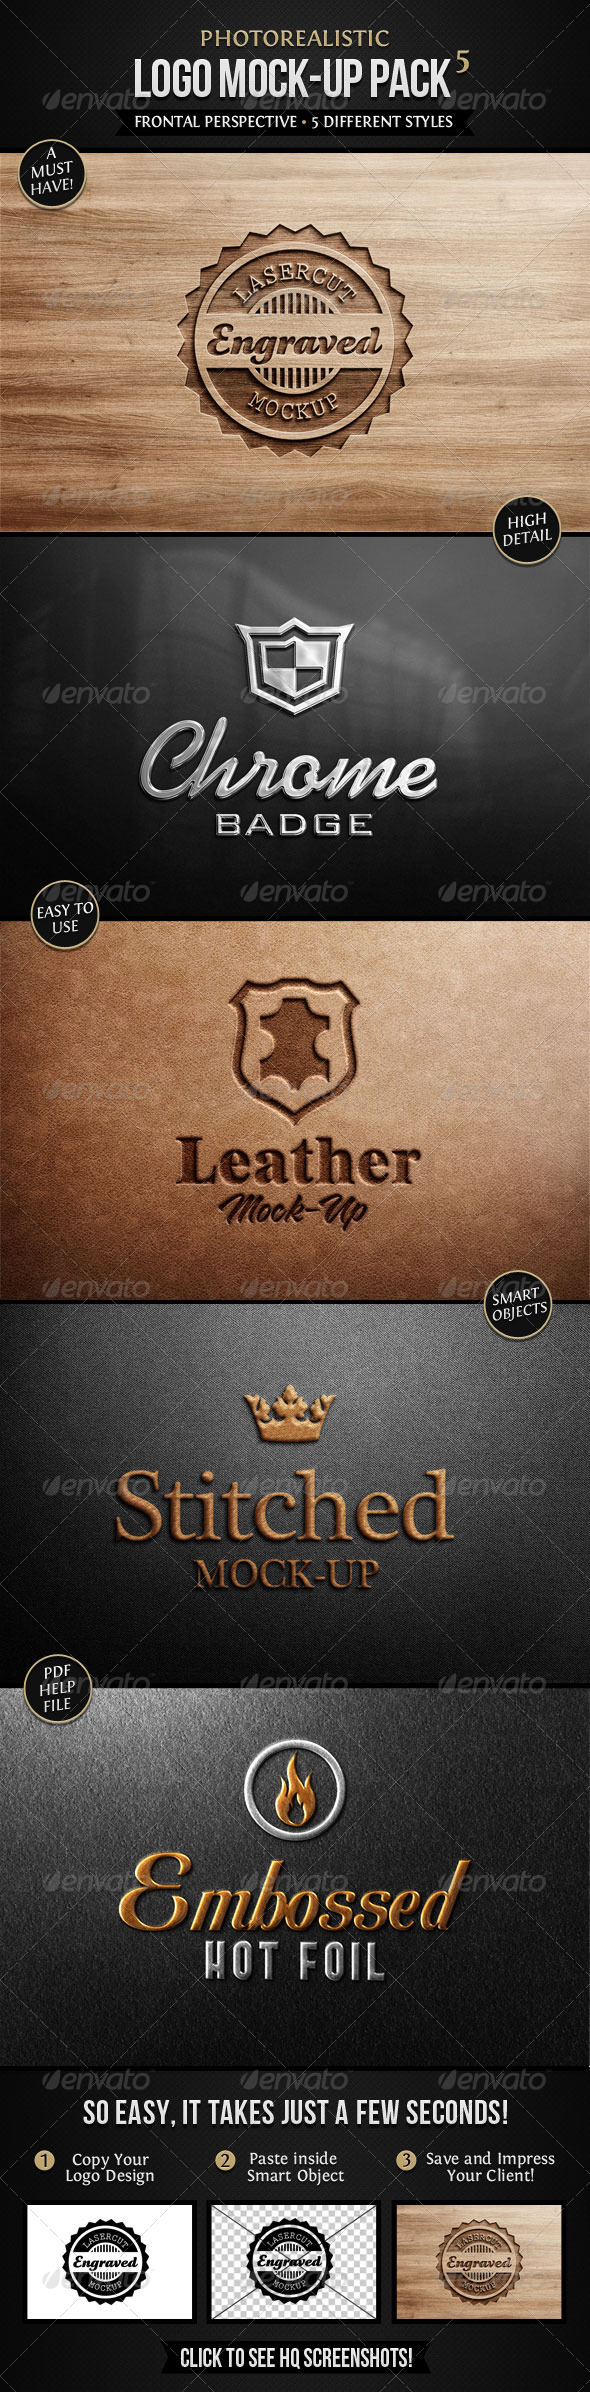 GraphicRiver Photorealistic Logo Mock-Up Pack 5 4112559